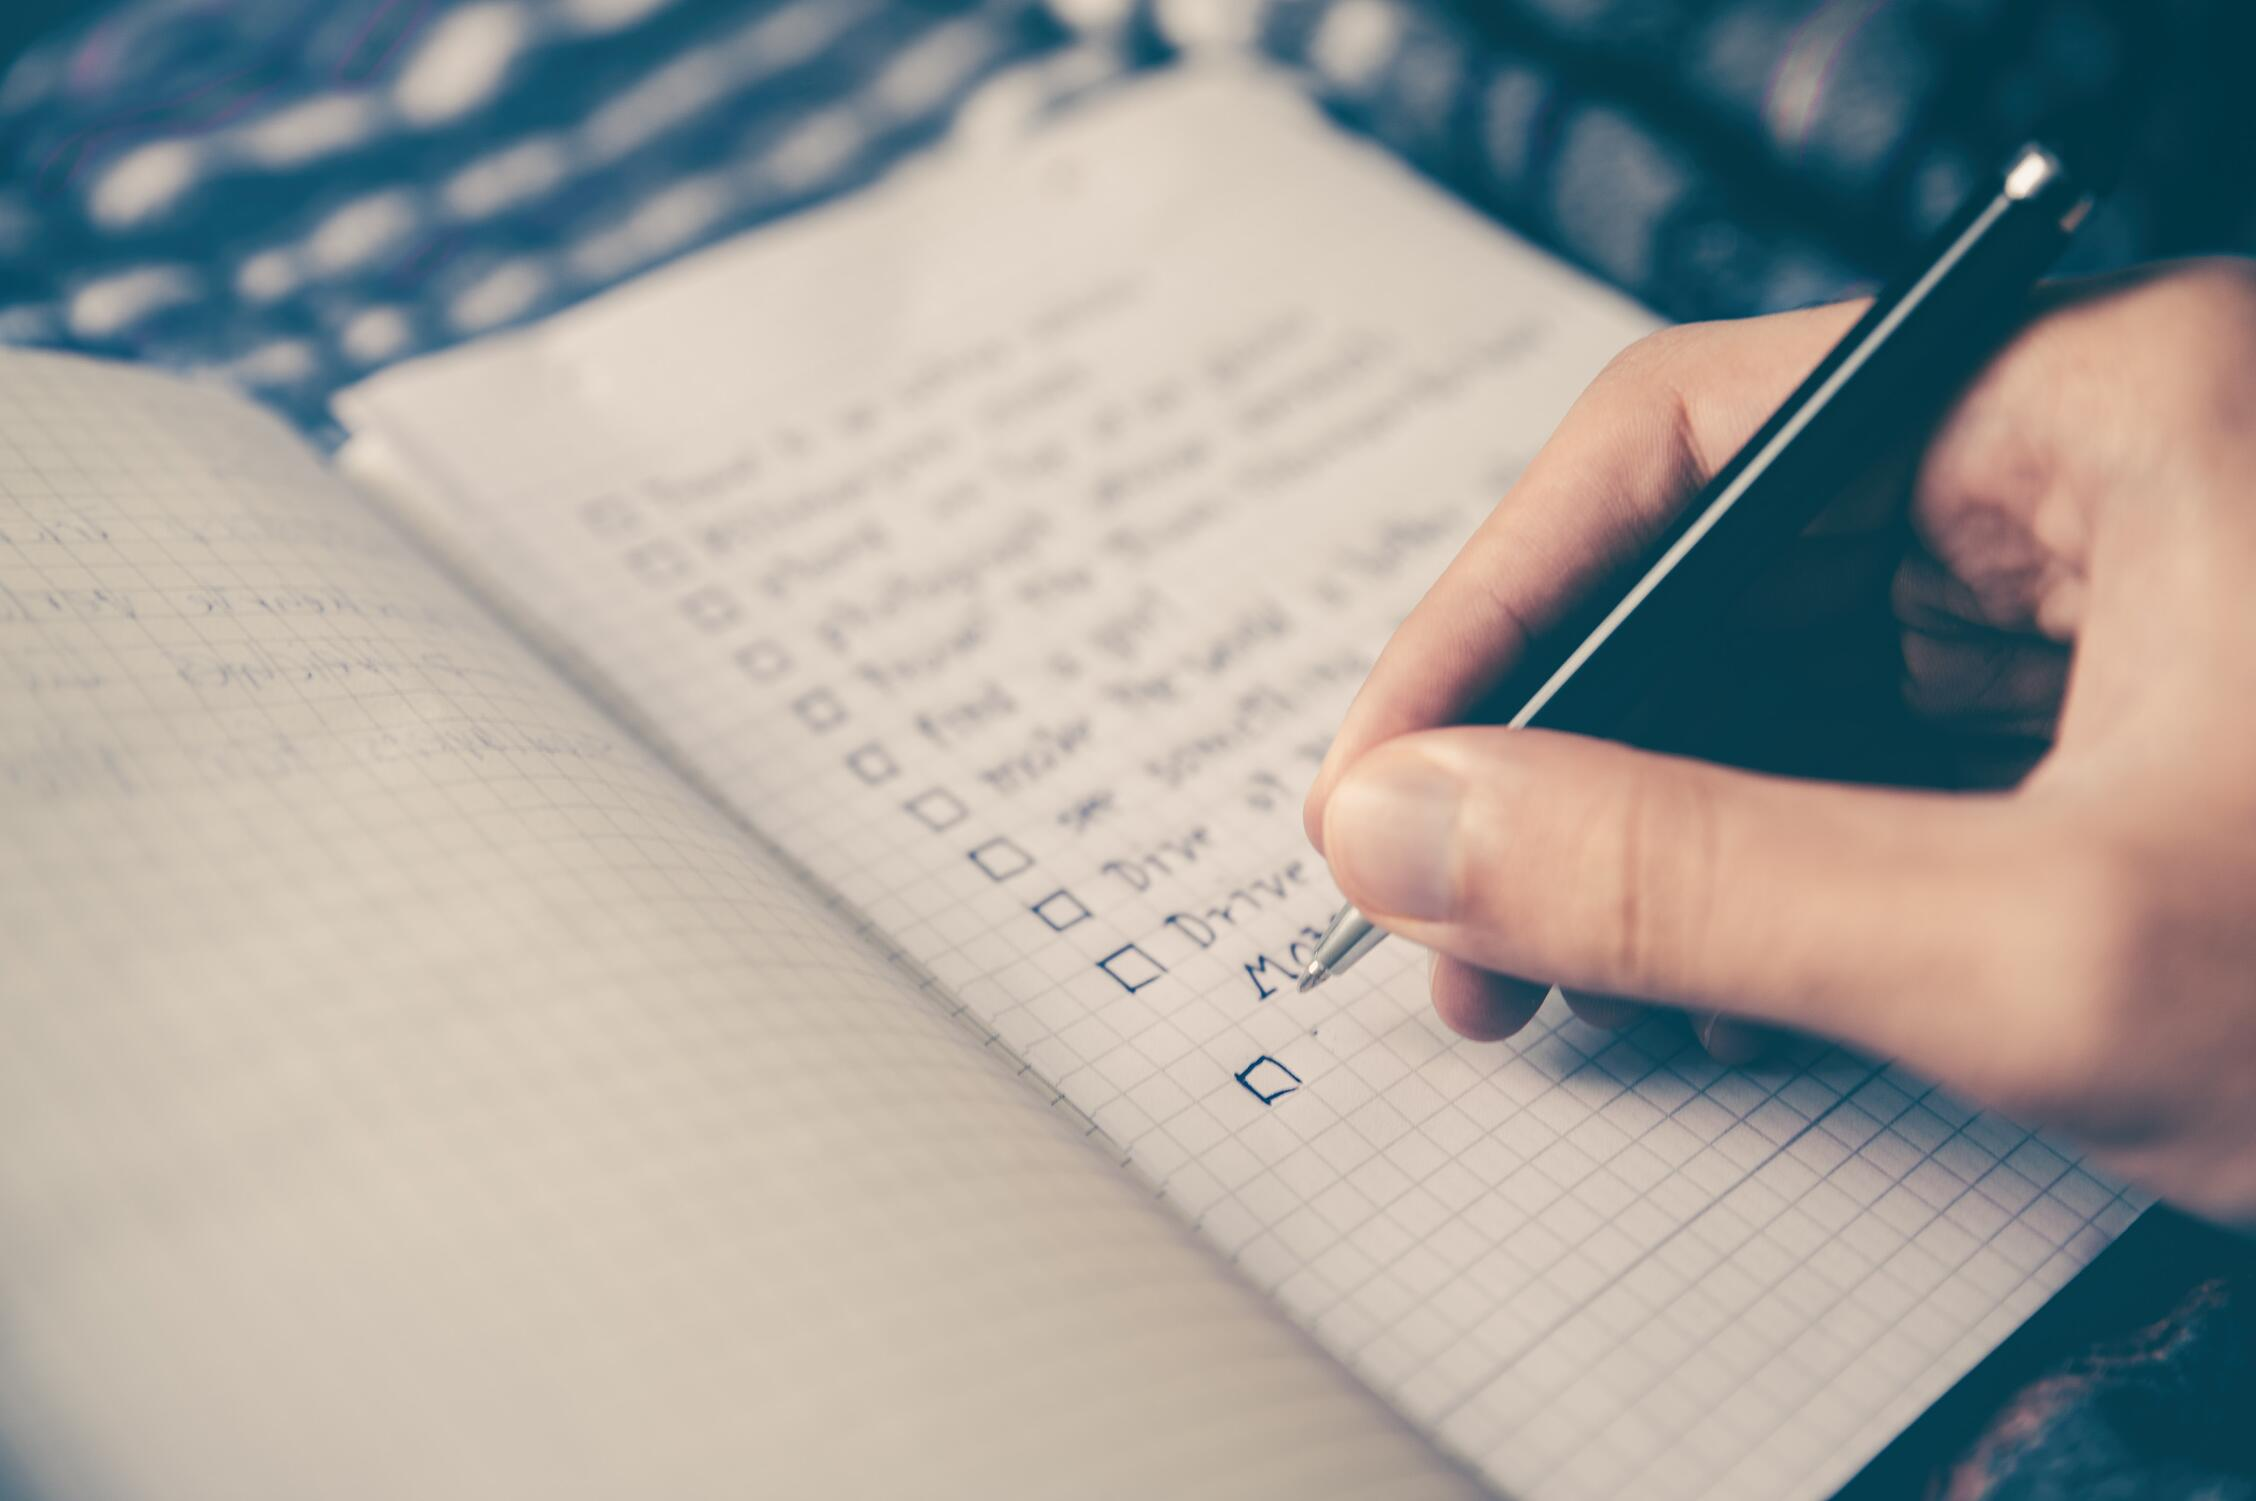 COVID-19 drivers checklist what you need to know before you go